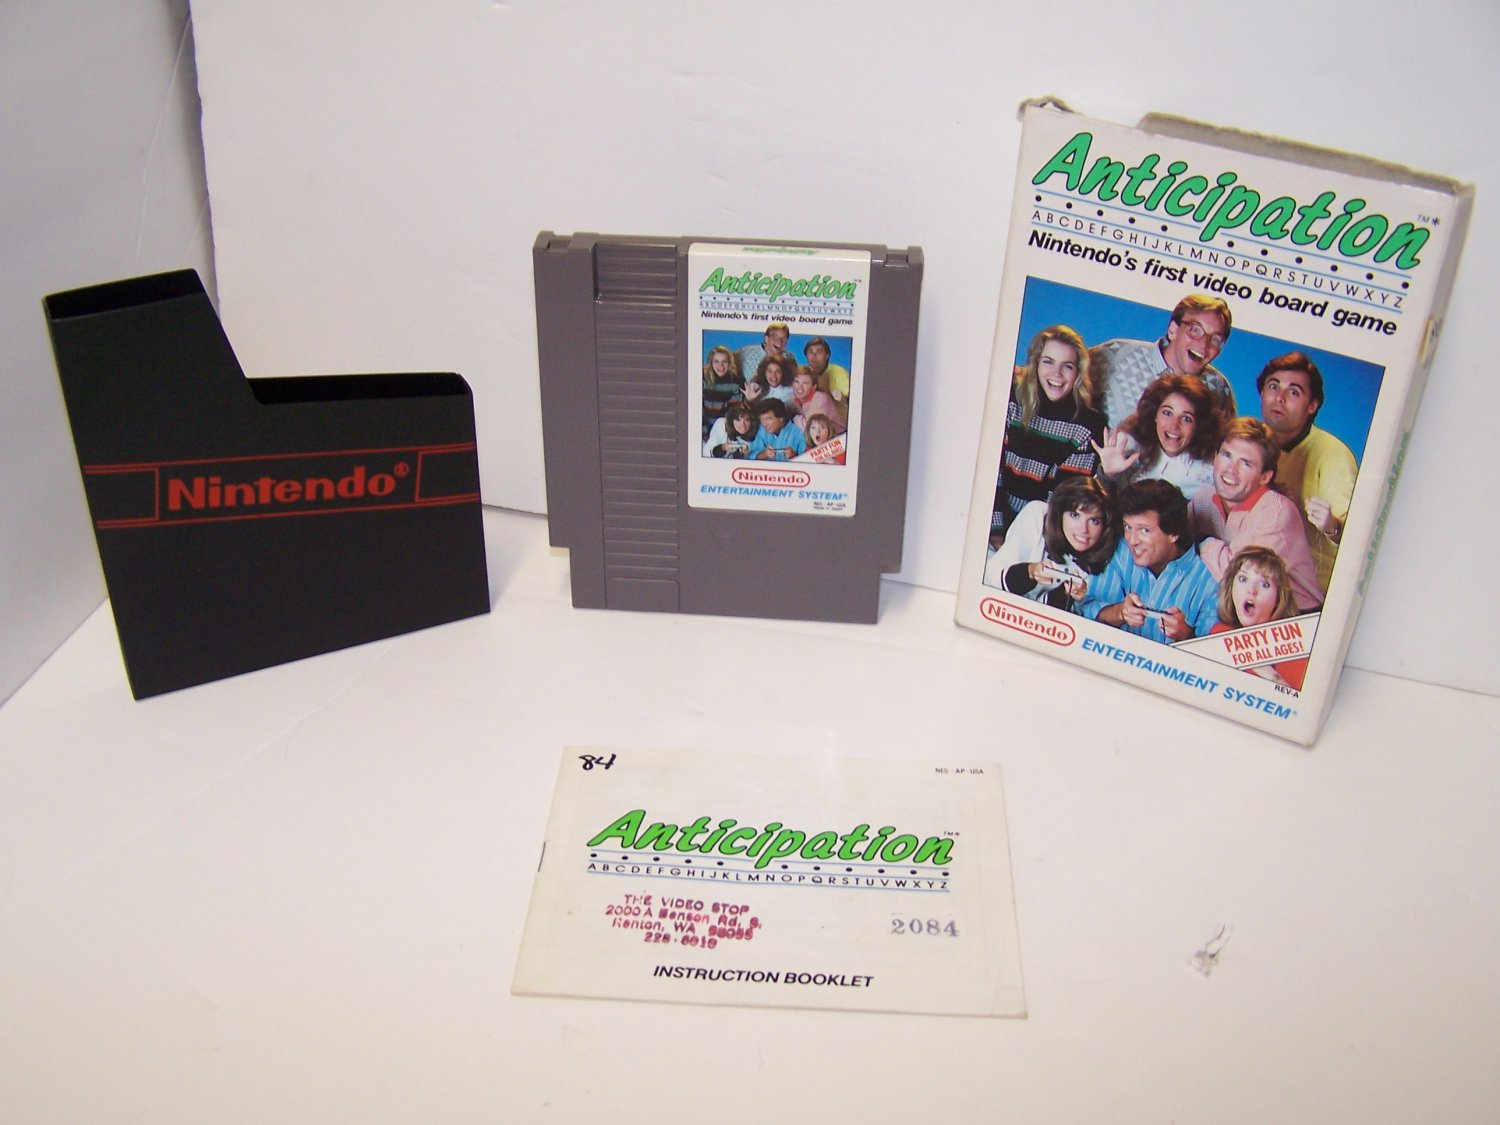 Anticipation Original 8-bit Nintendo NES Game Cartridge Complete